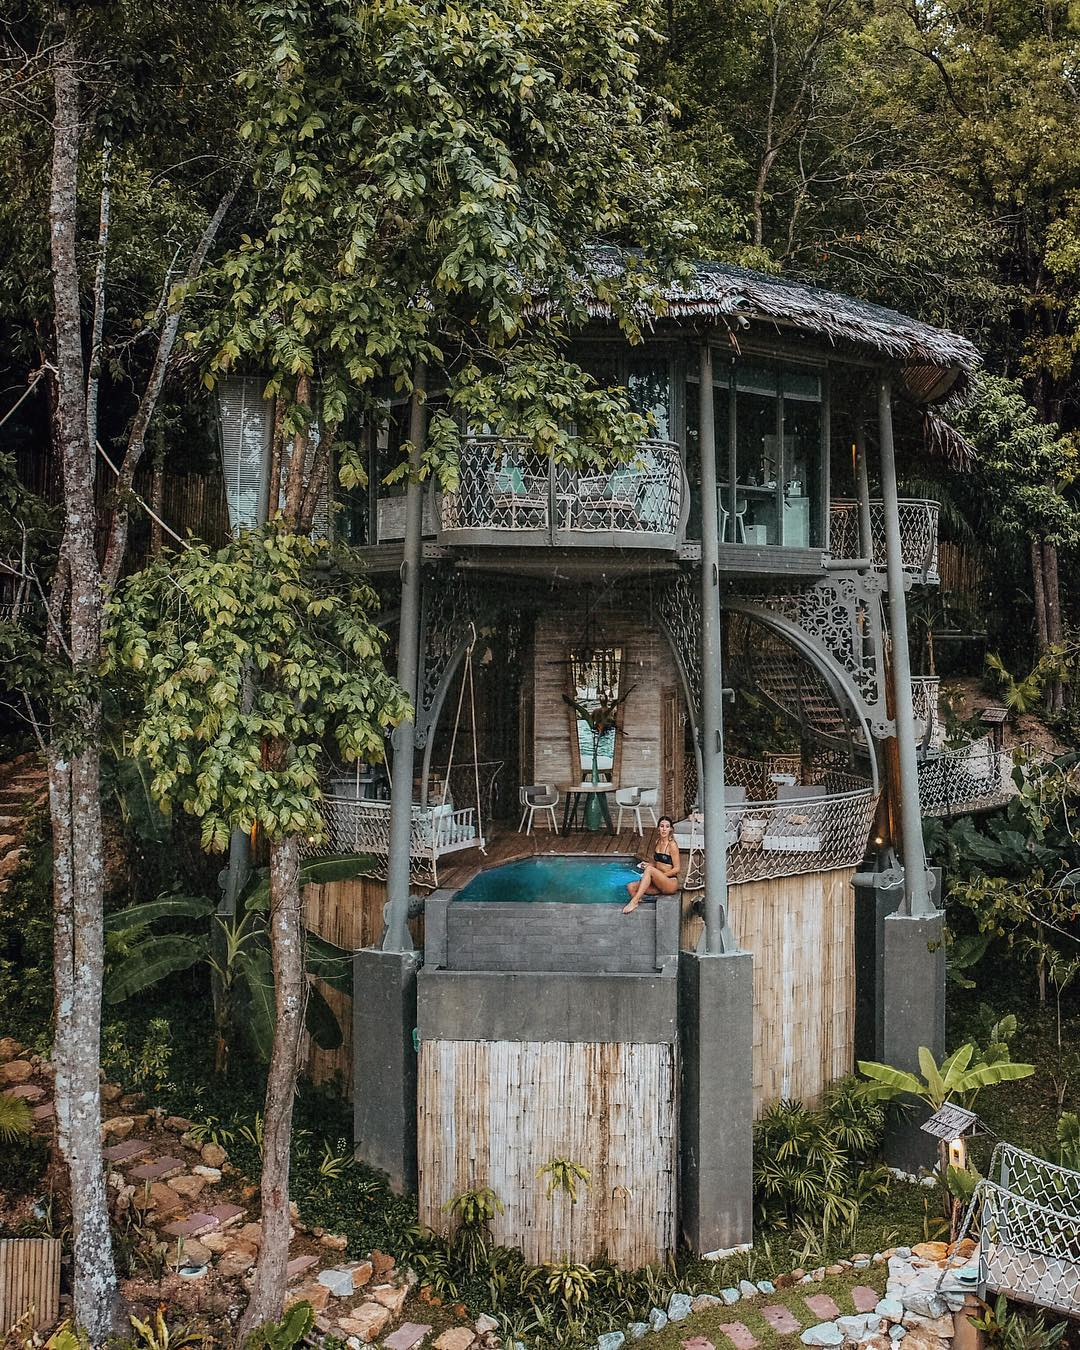 Treehouse villa in Thailand